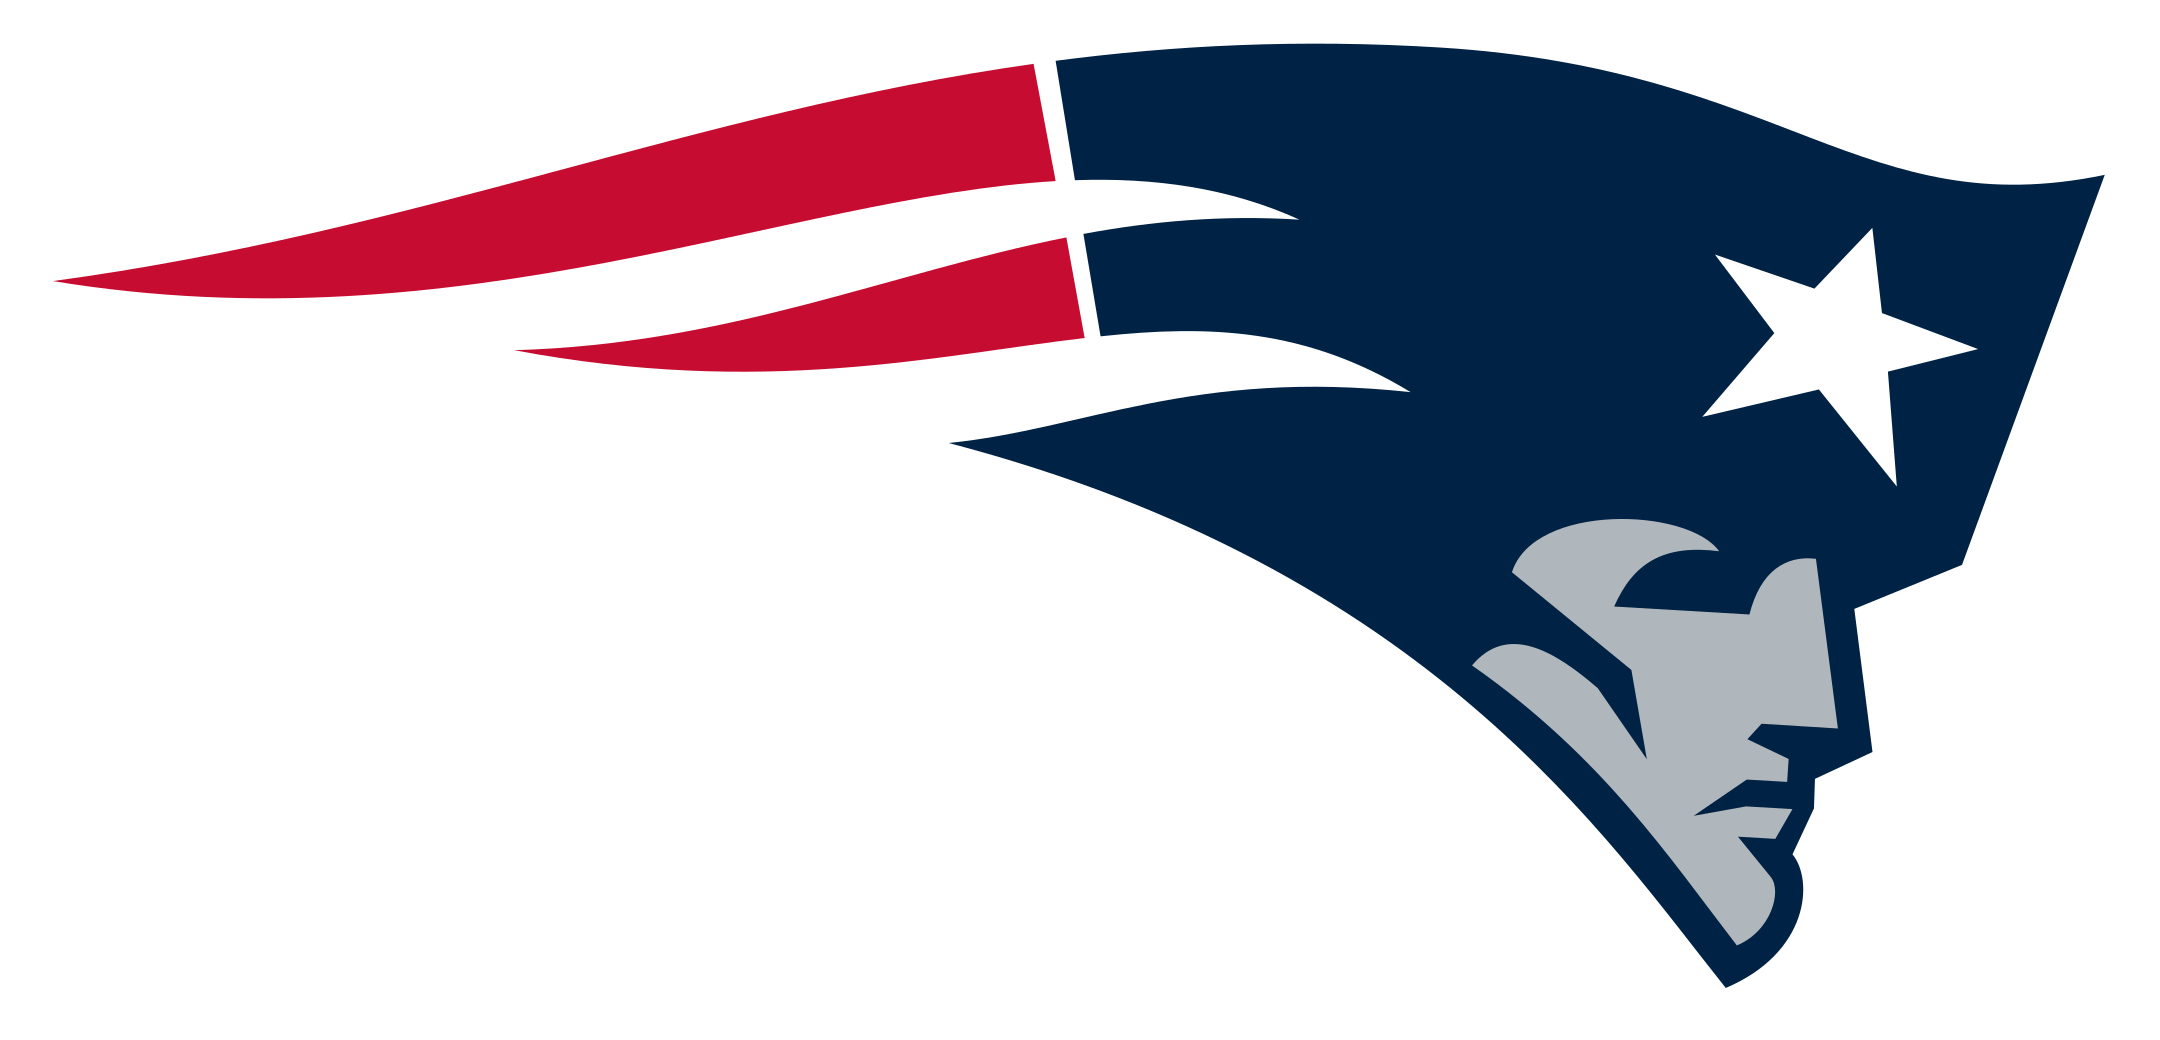 new england patriots logo 1 - New England Patriots Logo